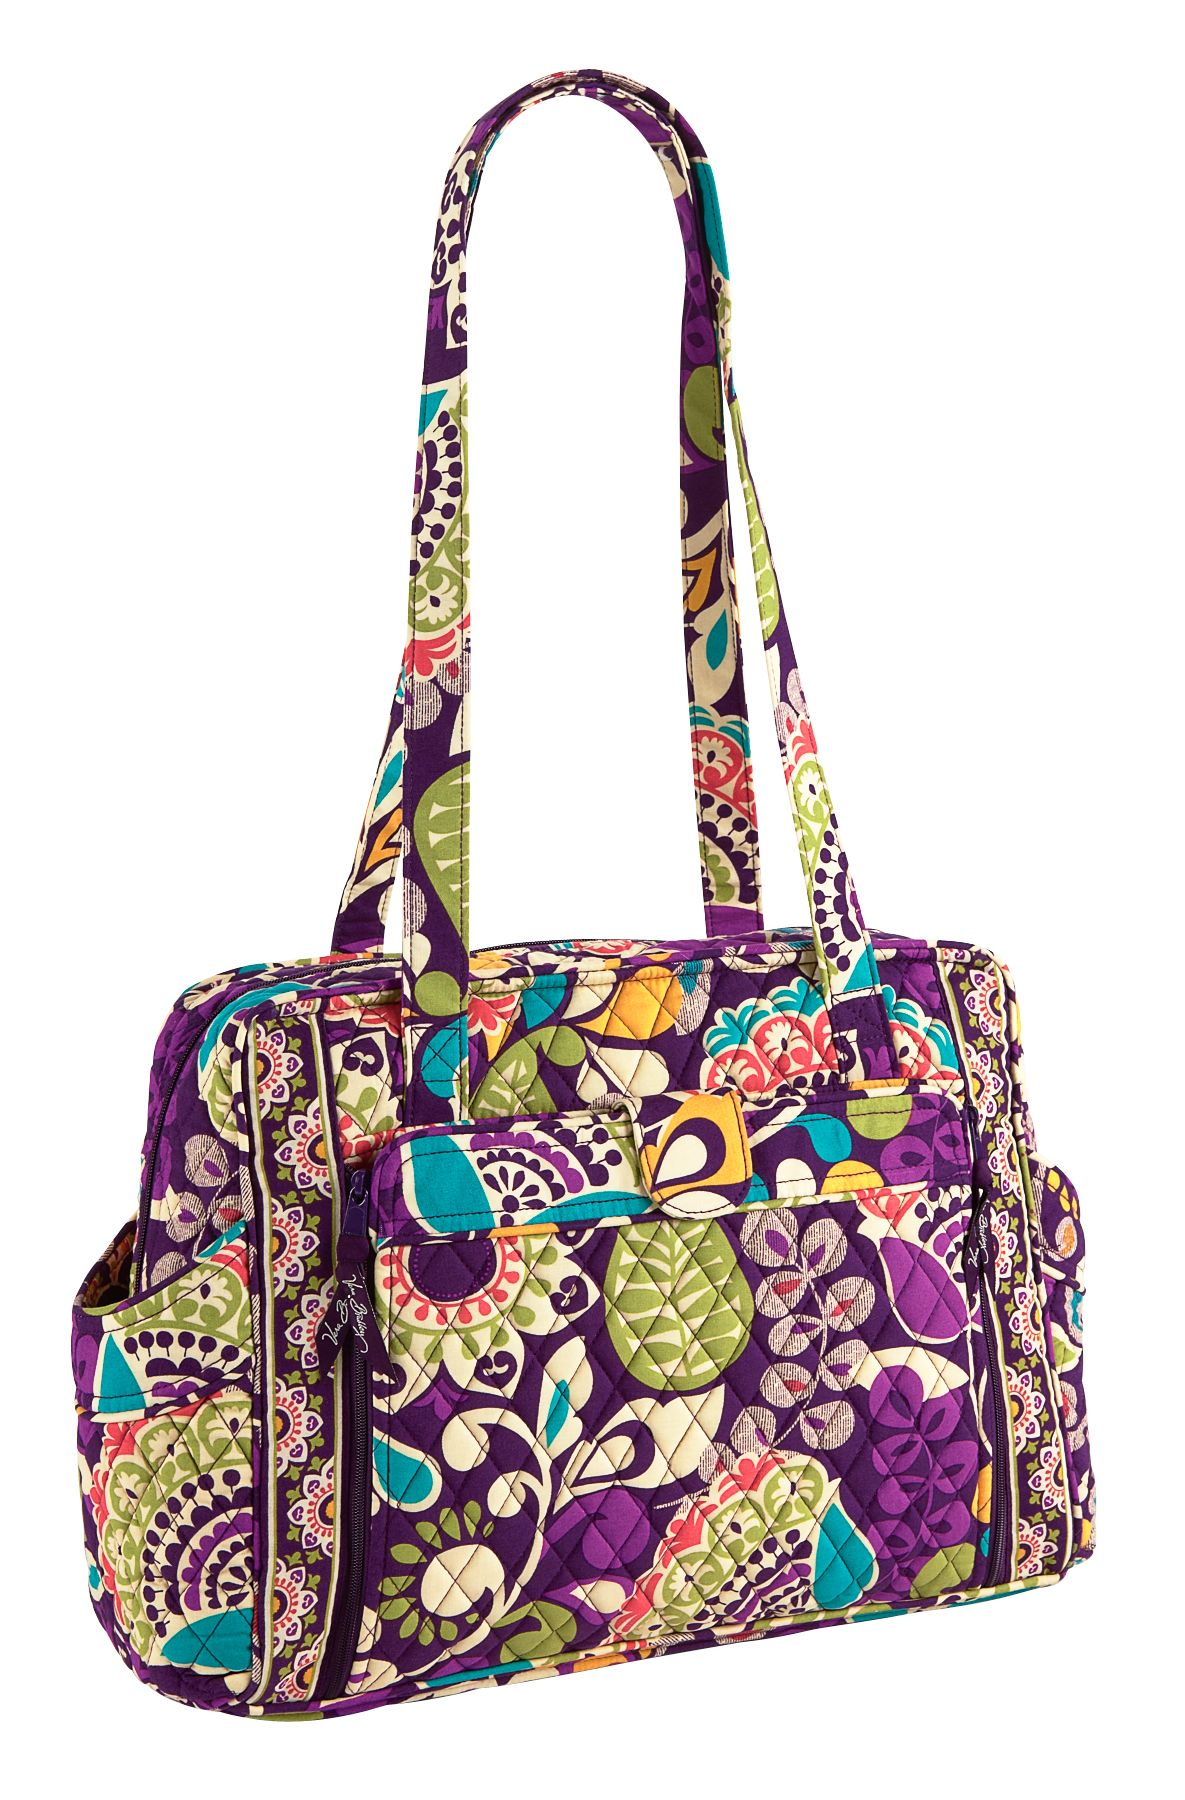 Vera Bradley Make A Change Baby Bag Plum Crazy Babymama